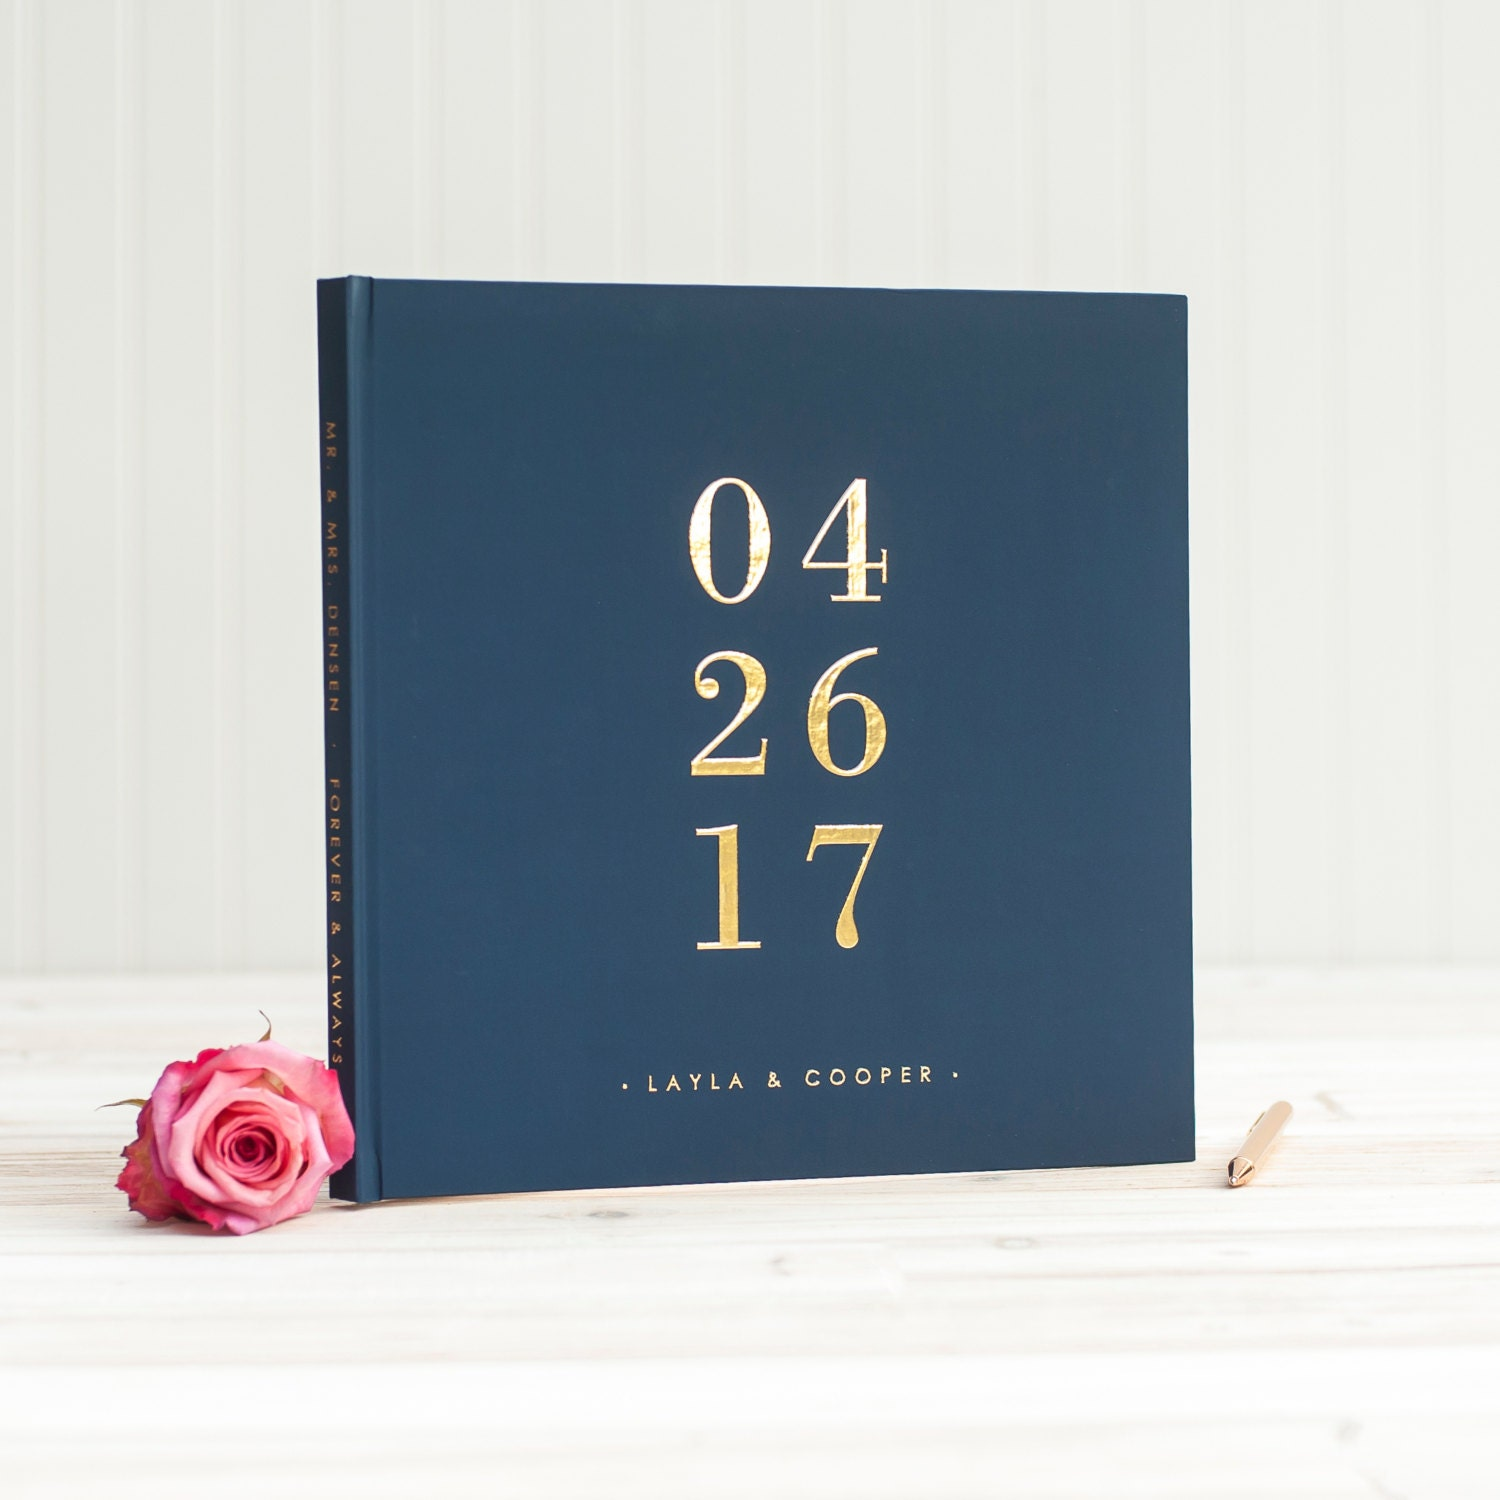 Wedding Guest Book Cover Design ~ Navy and gold wedding guest book with real foil